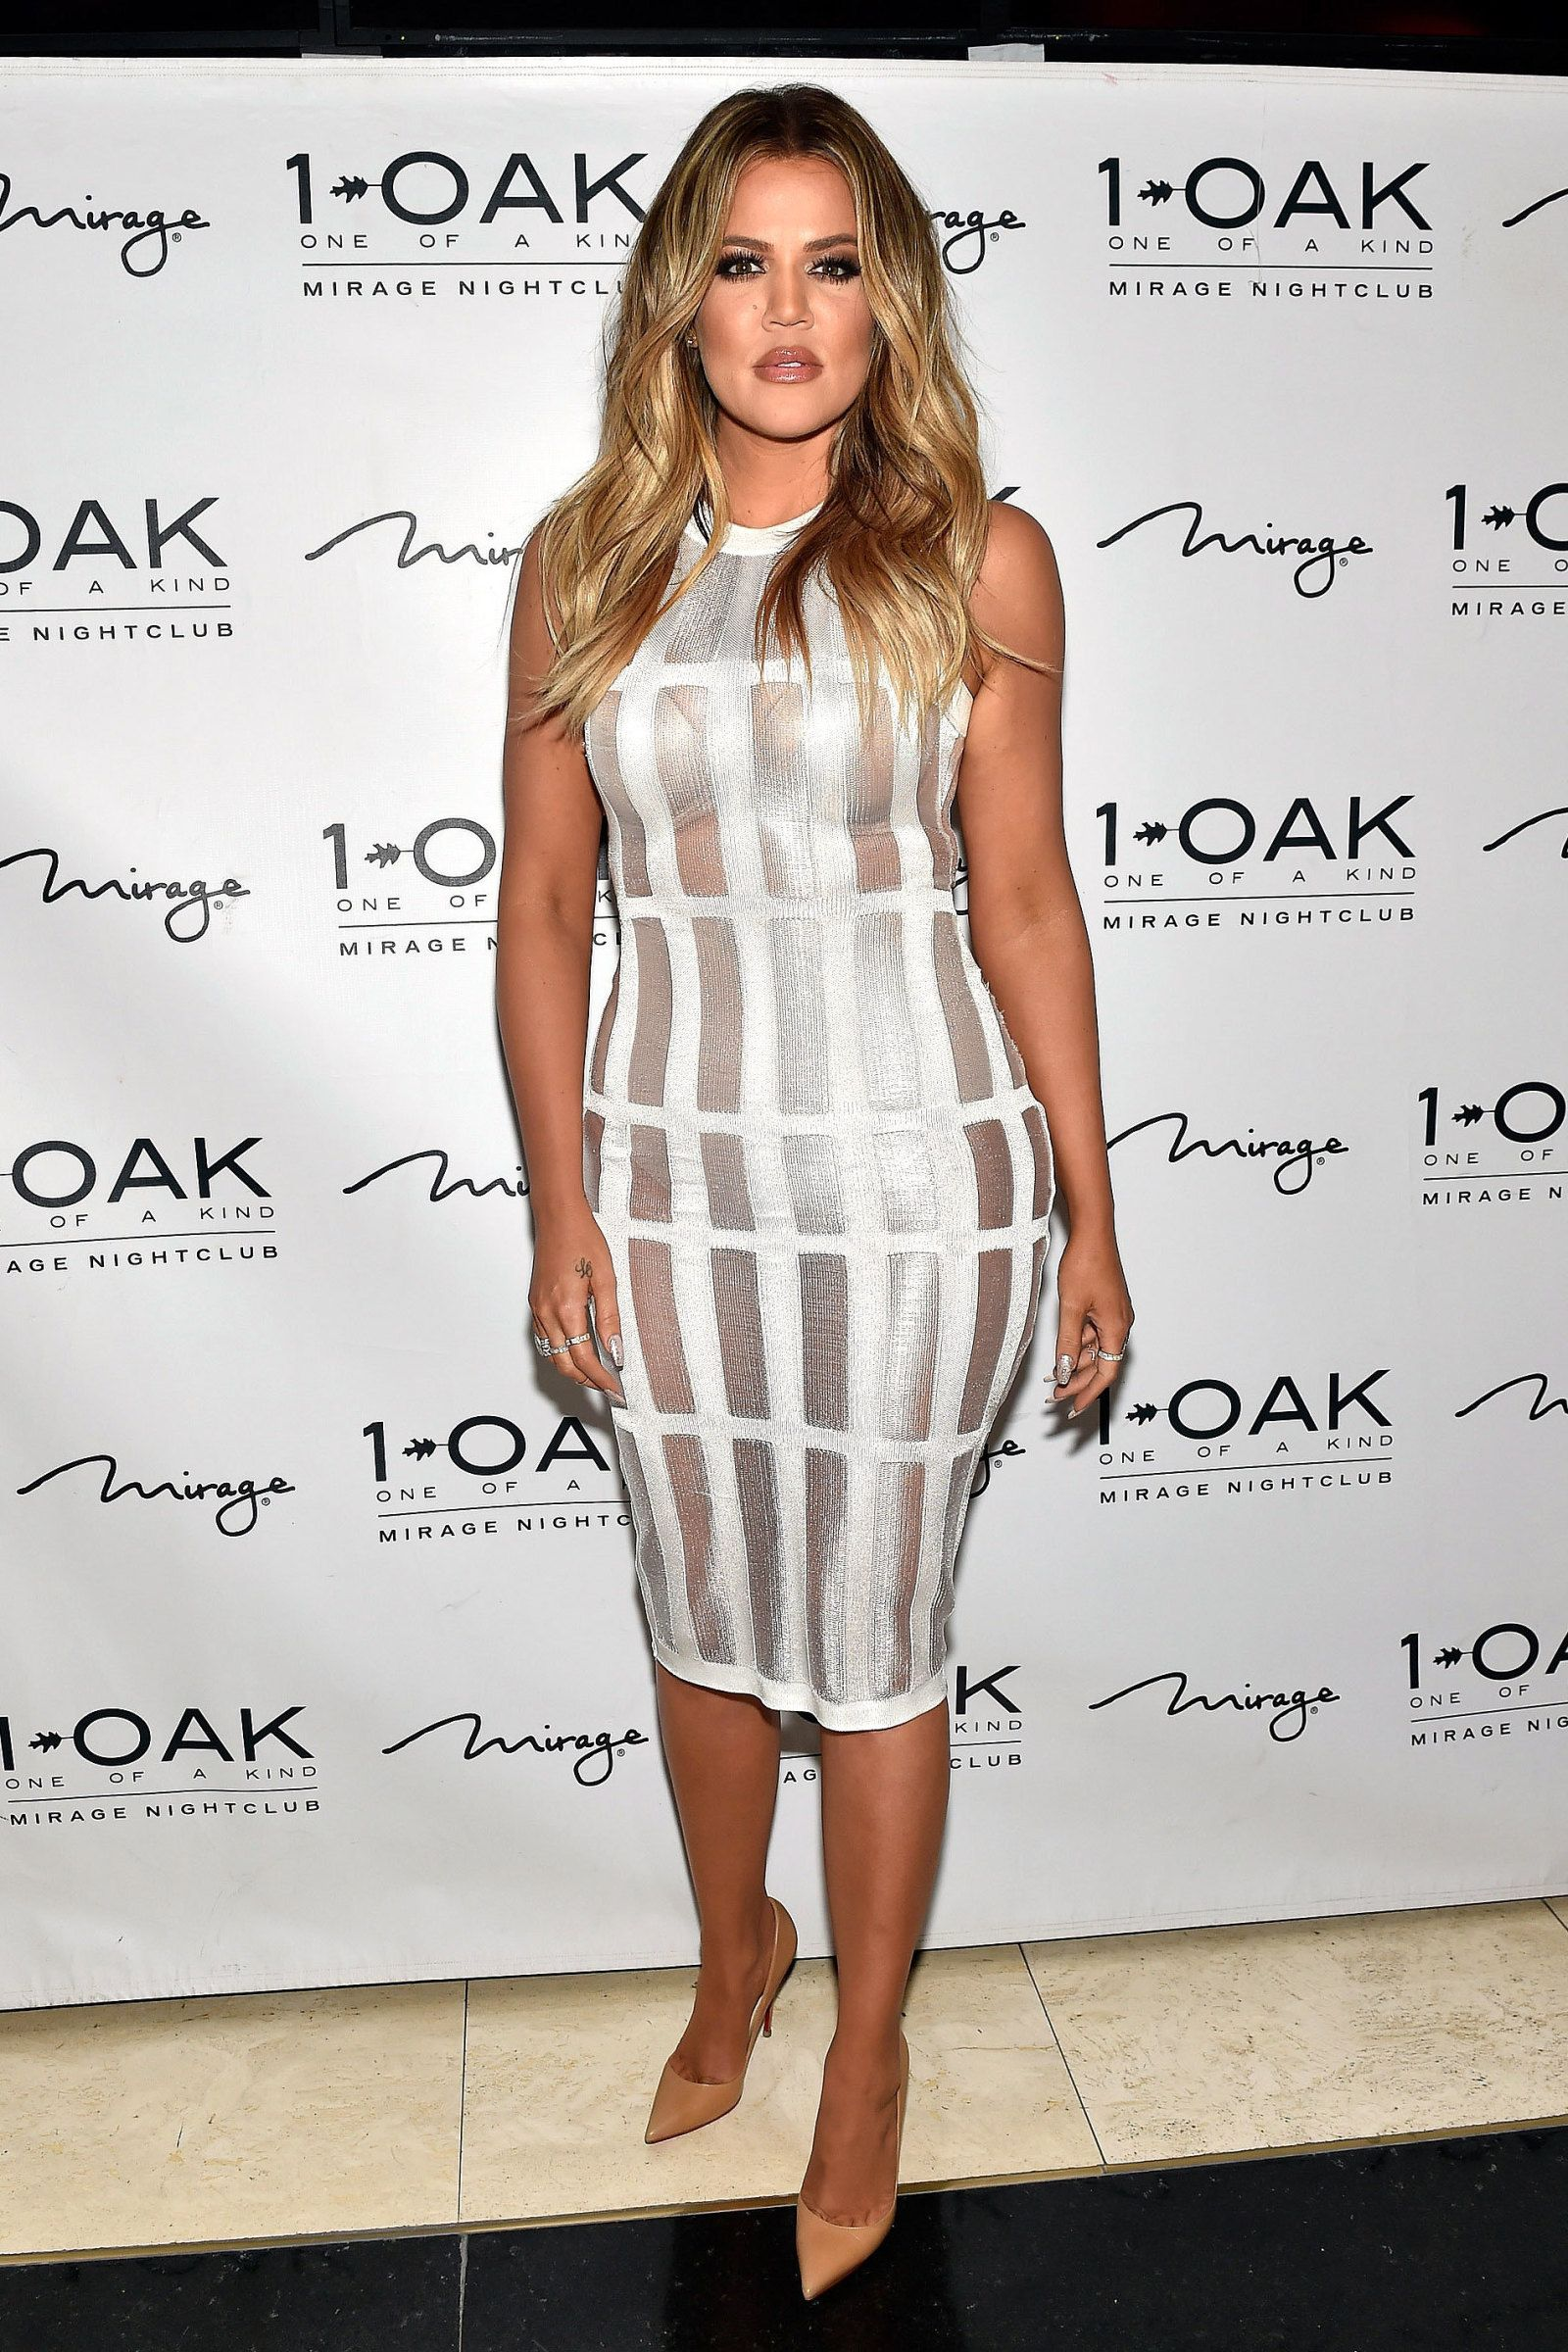 c4231263f1ab Khloe Kardashian Gets Really Real About How She Lost 13 Pounds -  Cosmopolitan.com